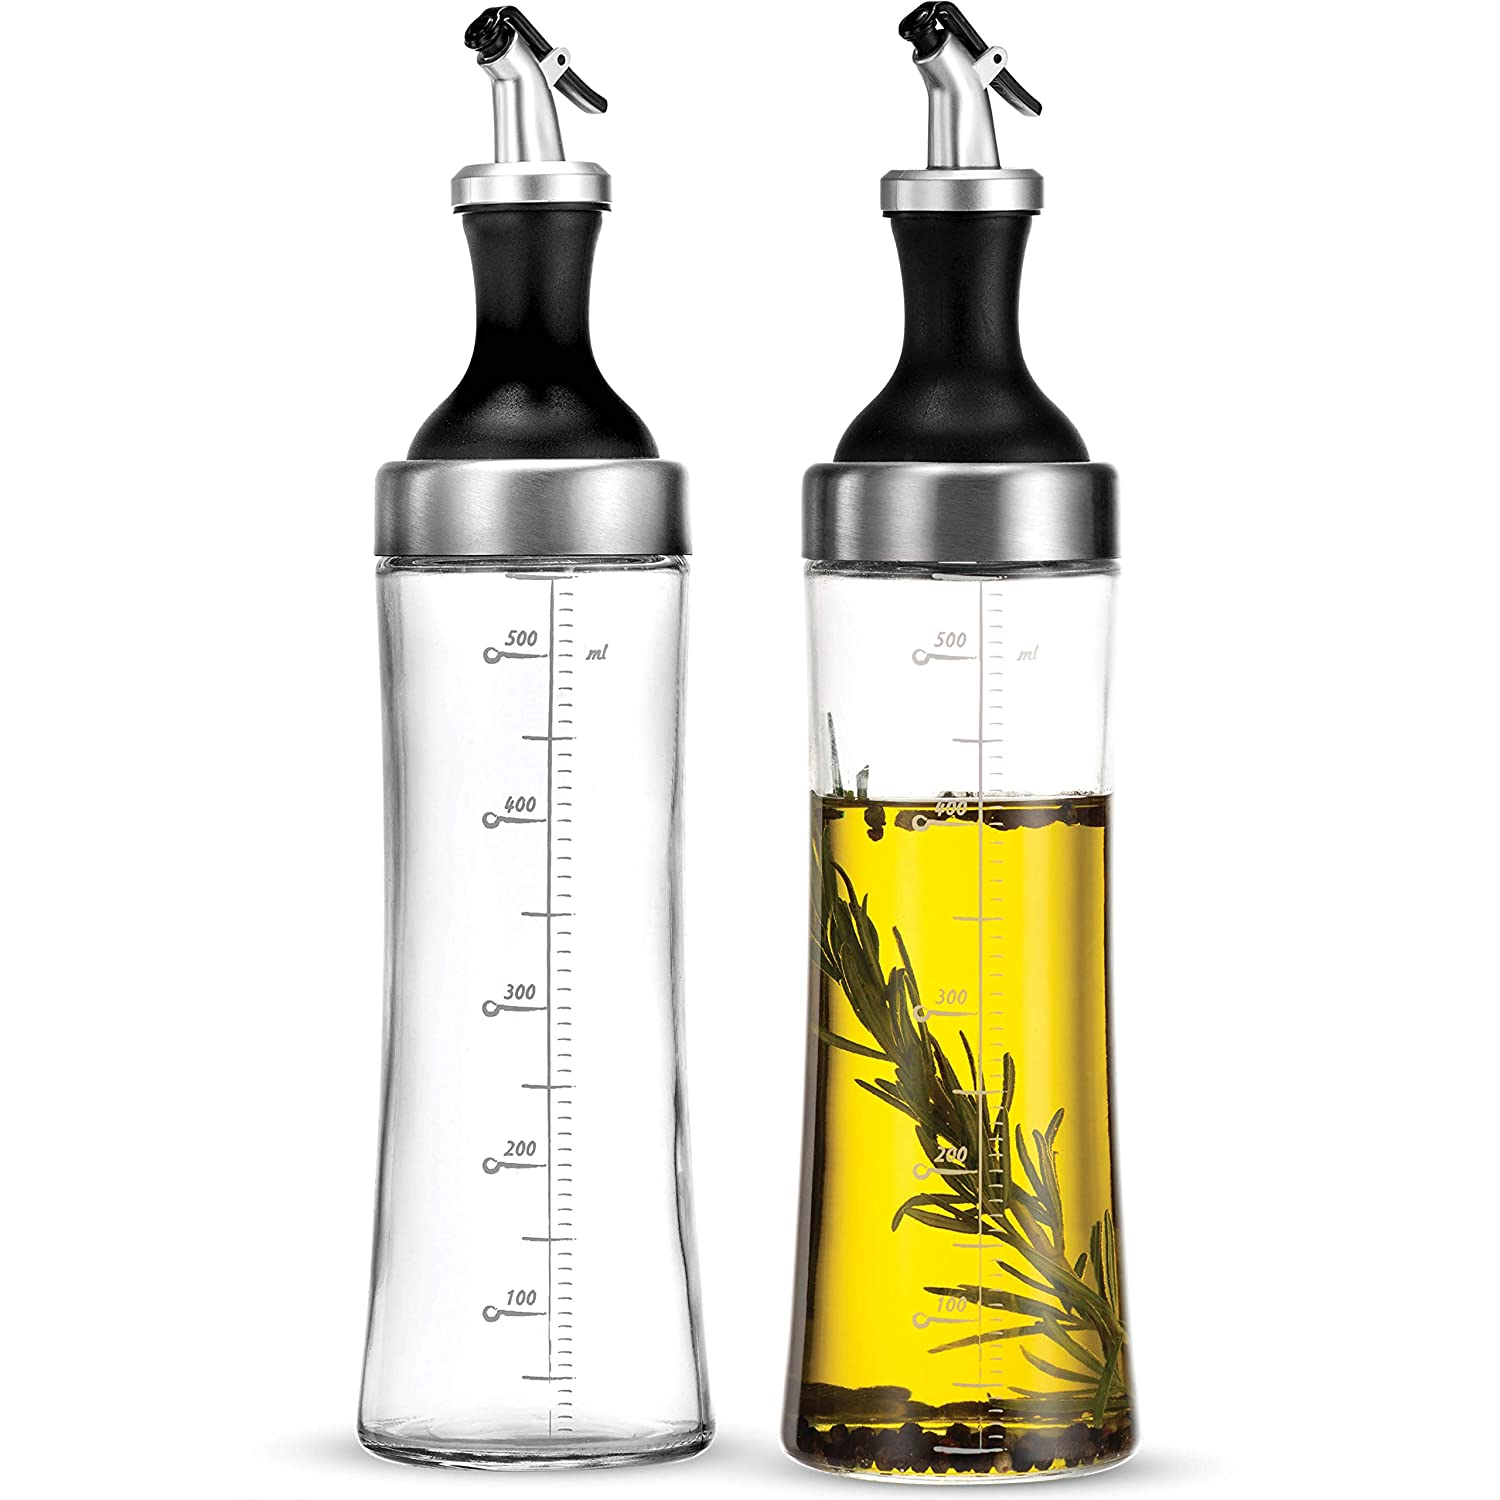 Superior Glass Oil and Vinegar Dispenser, (set of 2) Modern Olive Oil Dispenser, Wide Opening for Easy Refill and Cleaning, Clear Lead Free Glass Oil Bottle, BPA Free Pouring Spouts, 18 Oz. Cruet Set